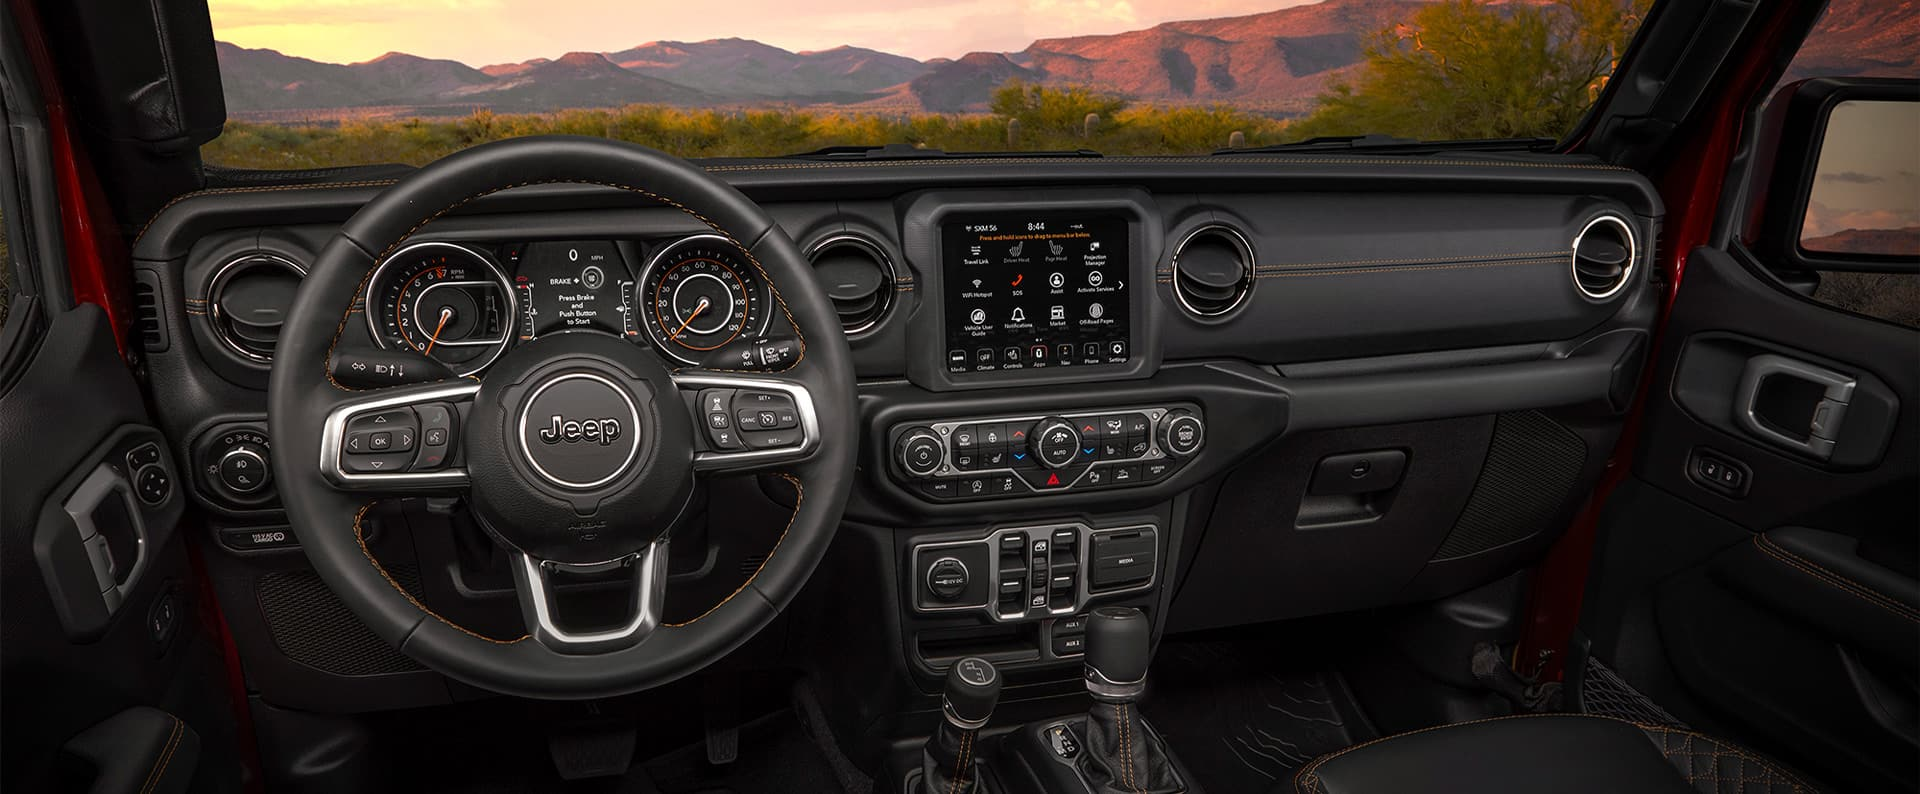 The interior of the 2021 Jeep Gladiator Overland, focusing on the steering wheel and instrument panel.